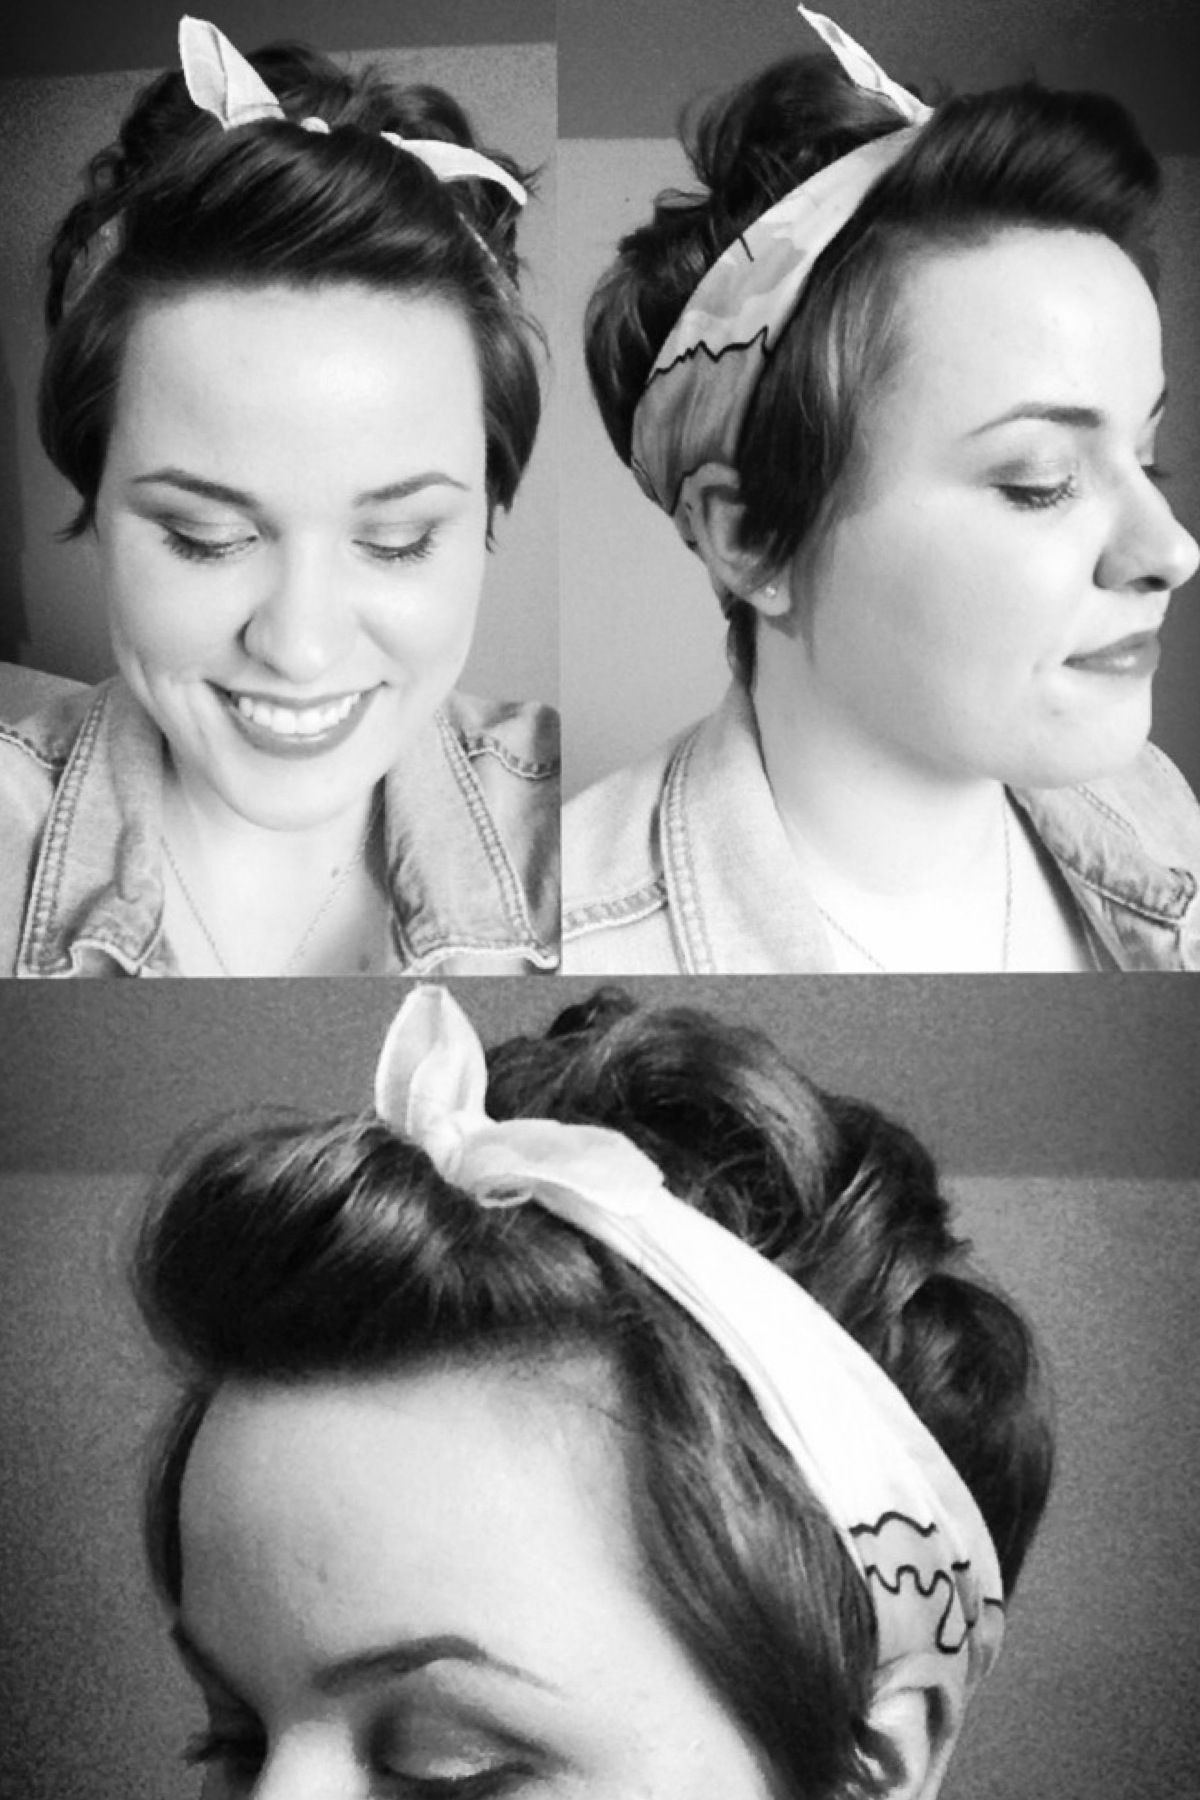 Braided Hairstyles Tutorials | Pixie cut, Pixies and Retro